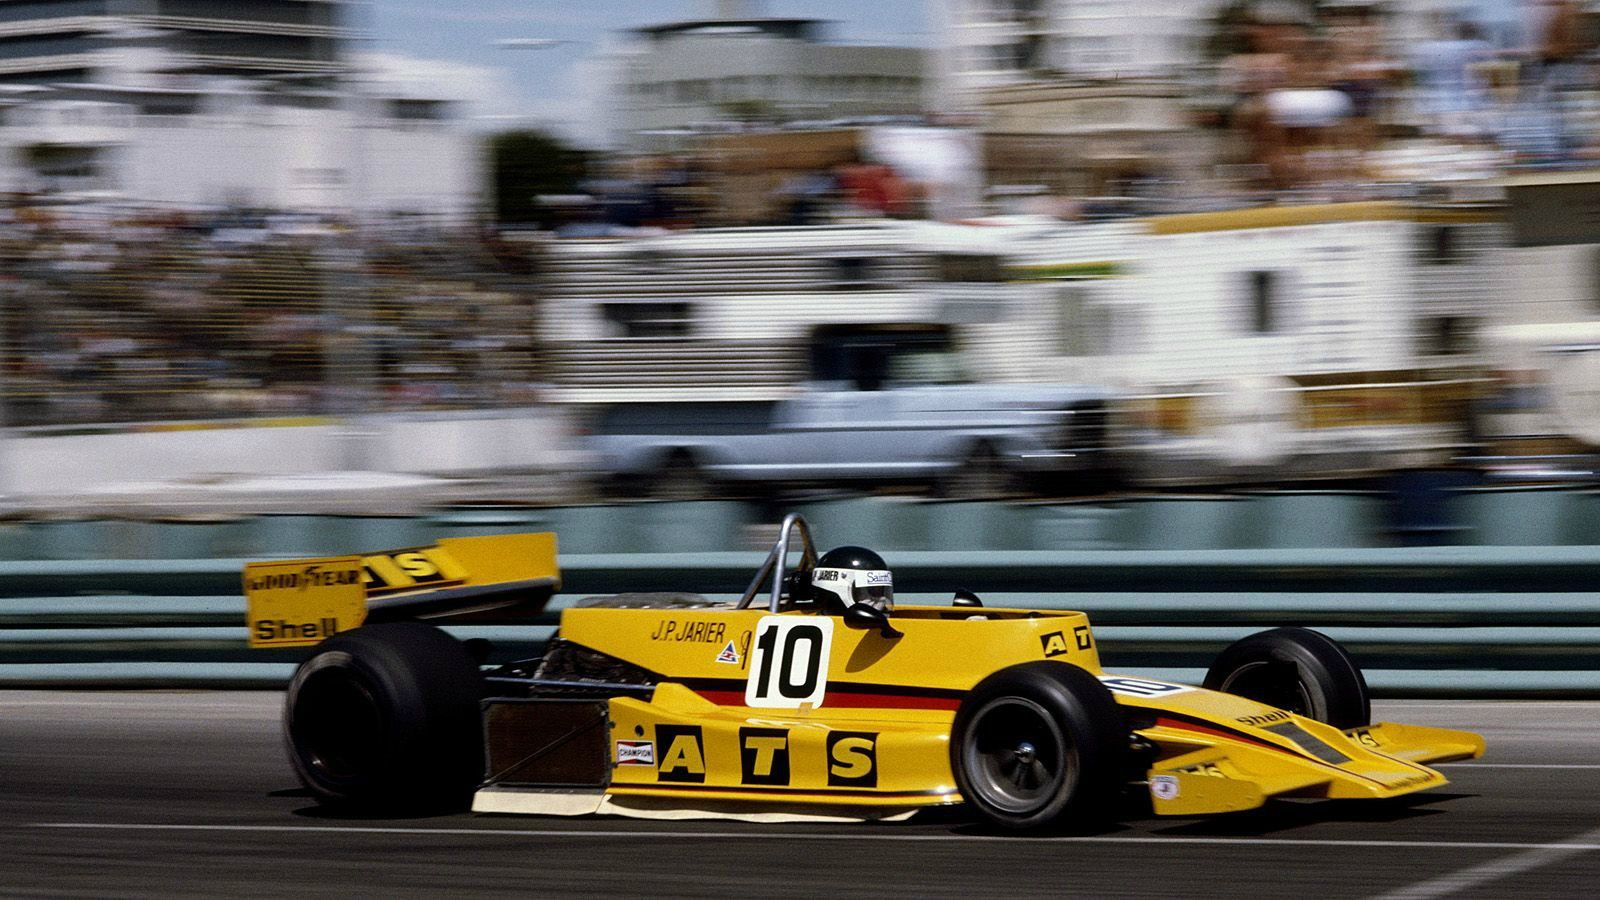 1978 GP USA (Jean Pierre Jarier) ATS HS1 - Ford